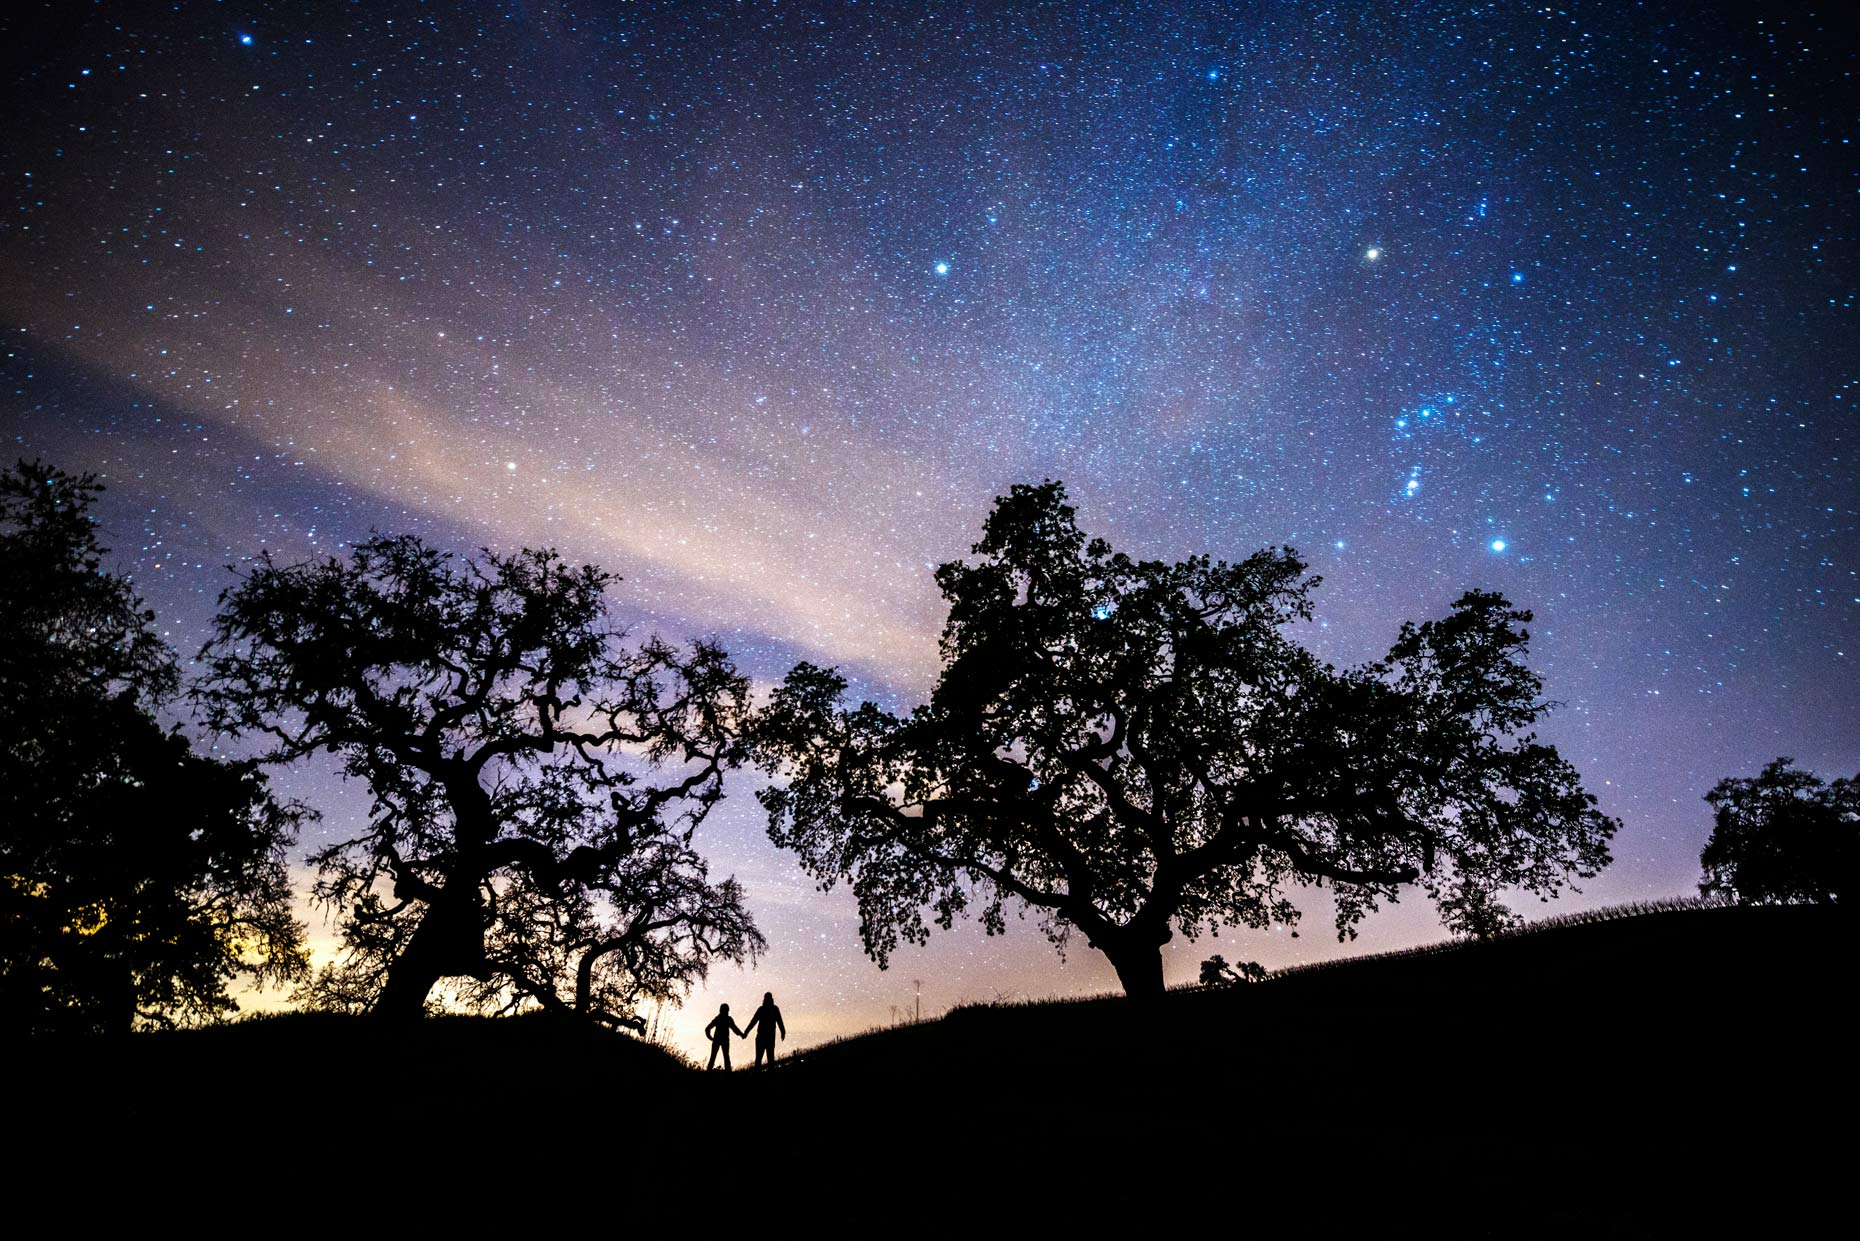 Night Sky - Two People Under The Stars - Alexander Valley Vineyards, California